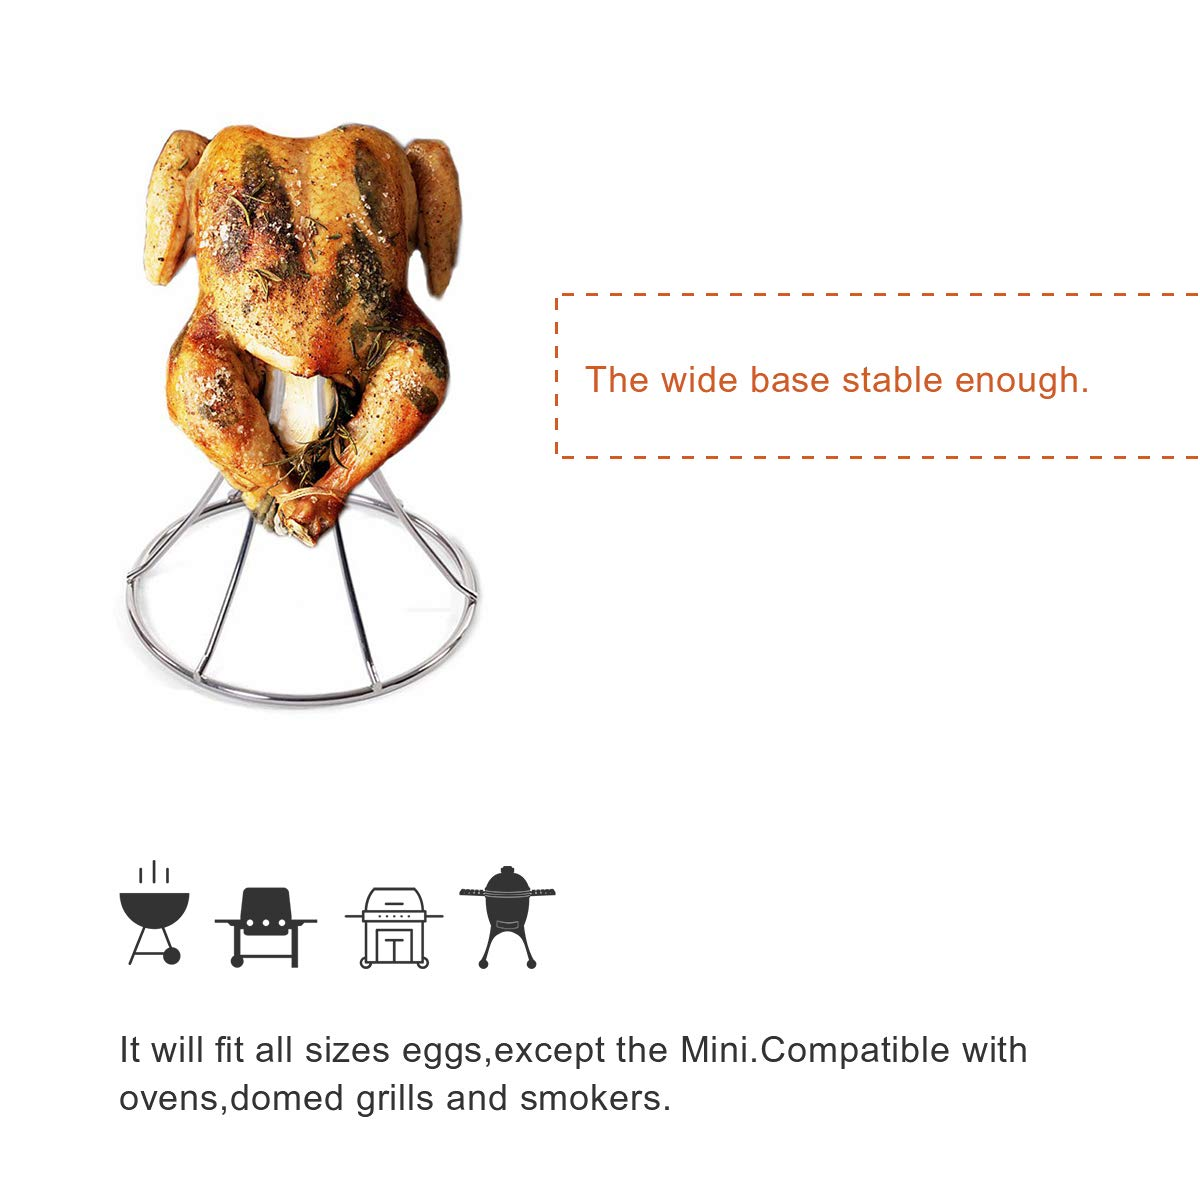 QQMaster Vertical Chicken Roaster Stainless Steel Turkey Rack Roaster Beer Can Meat Rack Holder Non-Stick Poultry Grill Stand Can Hold Turkey Or Cornish Game Hens Fit for Big Green Egg,Kamado Grills by QQMaster (Image #5)